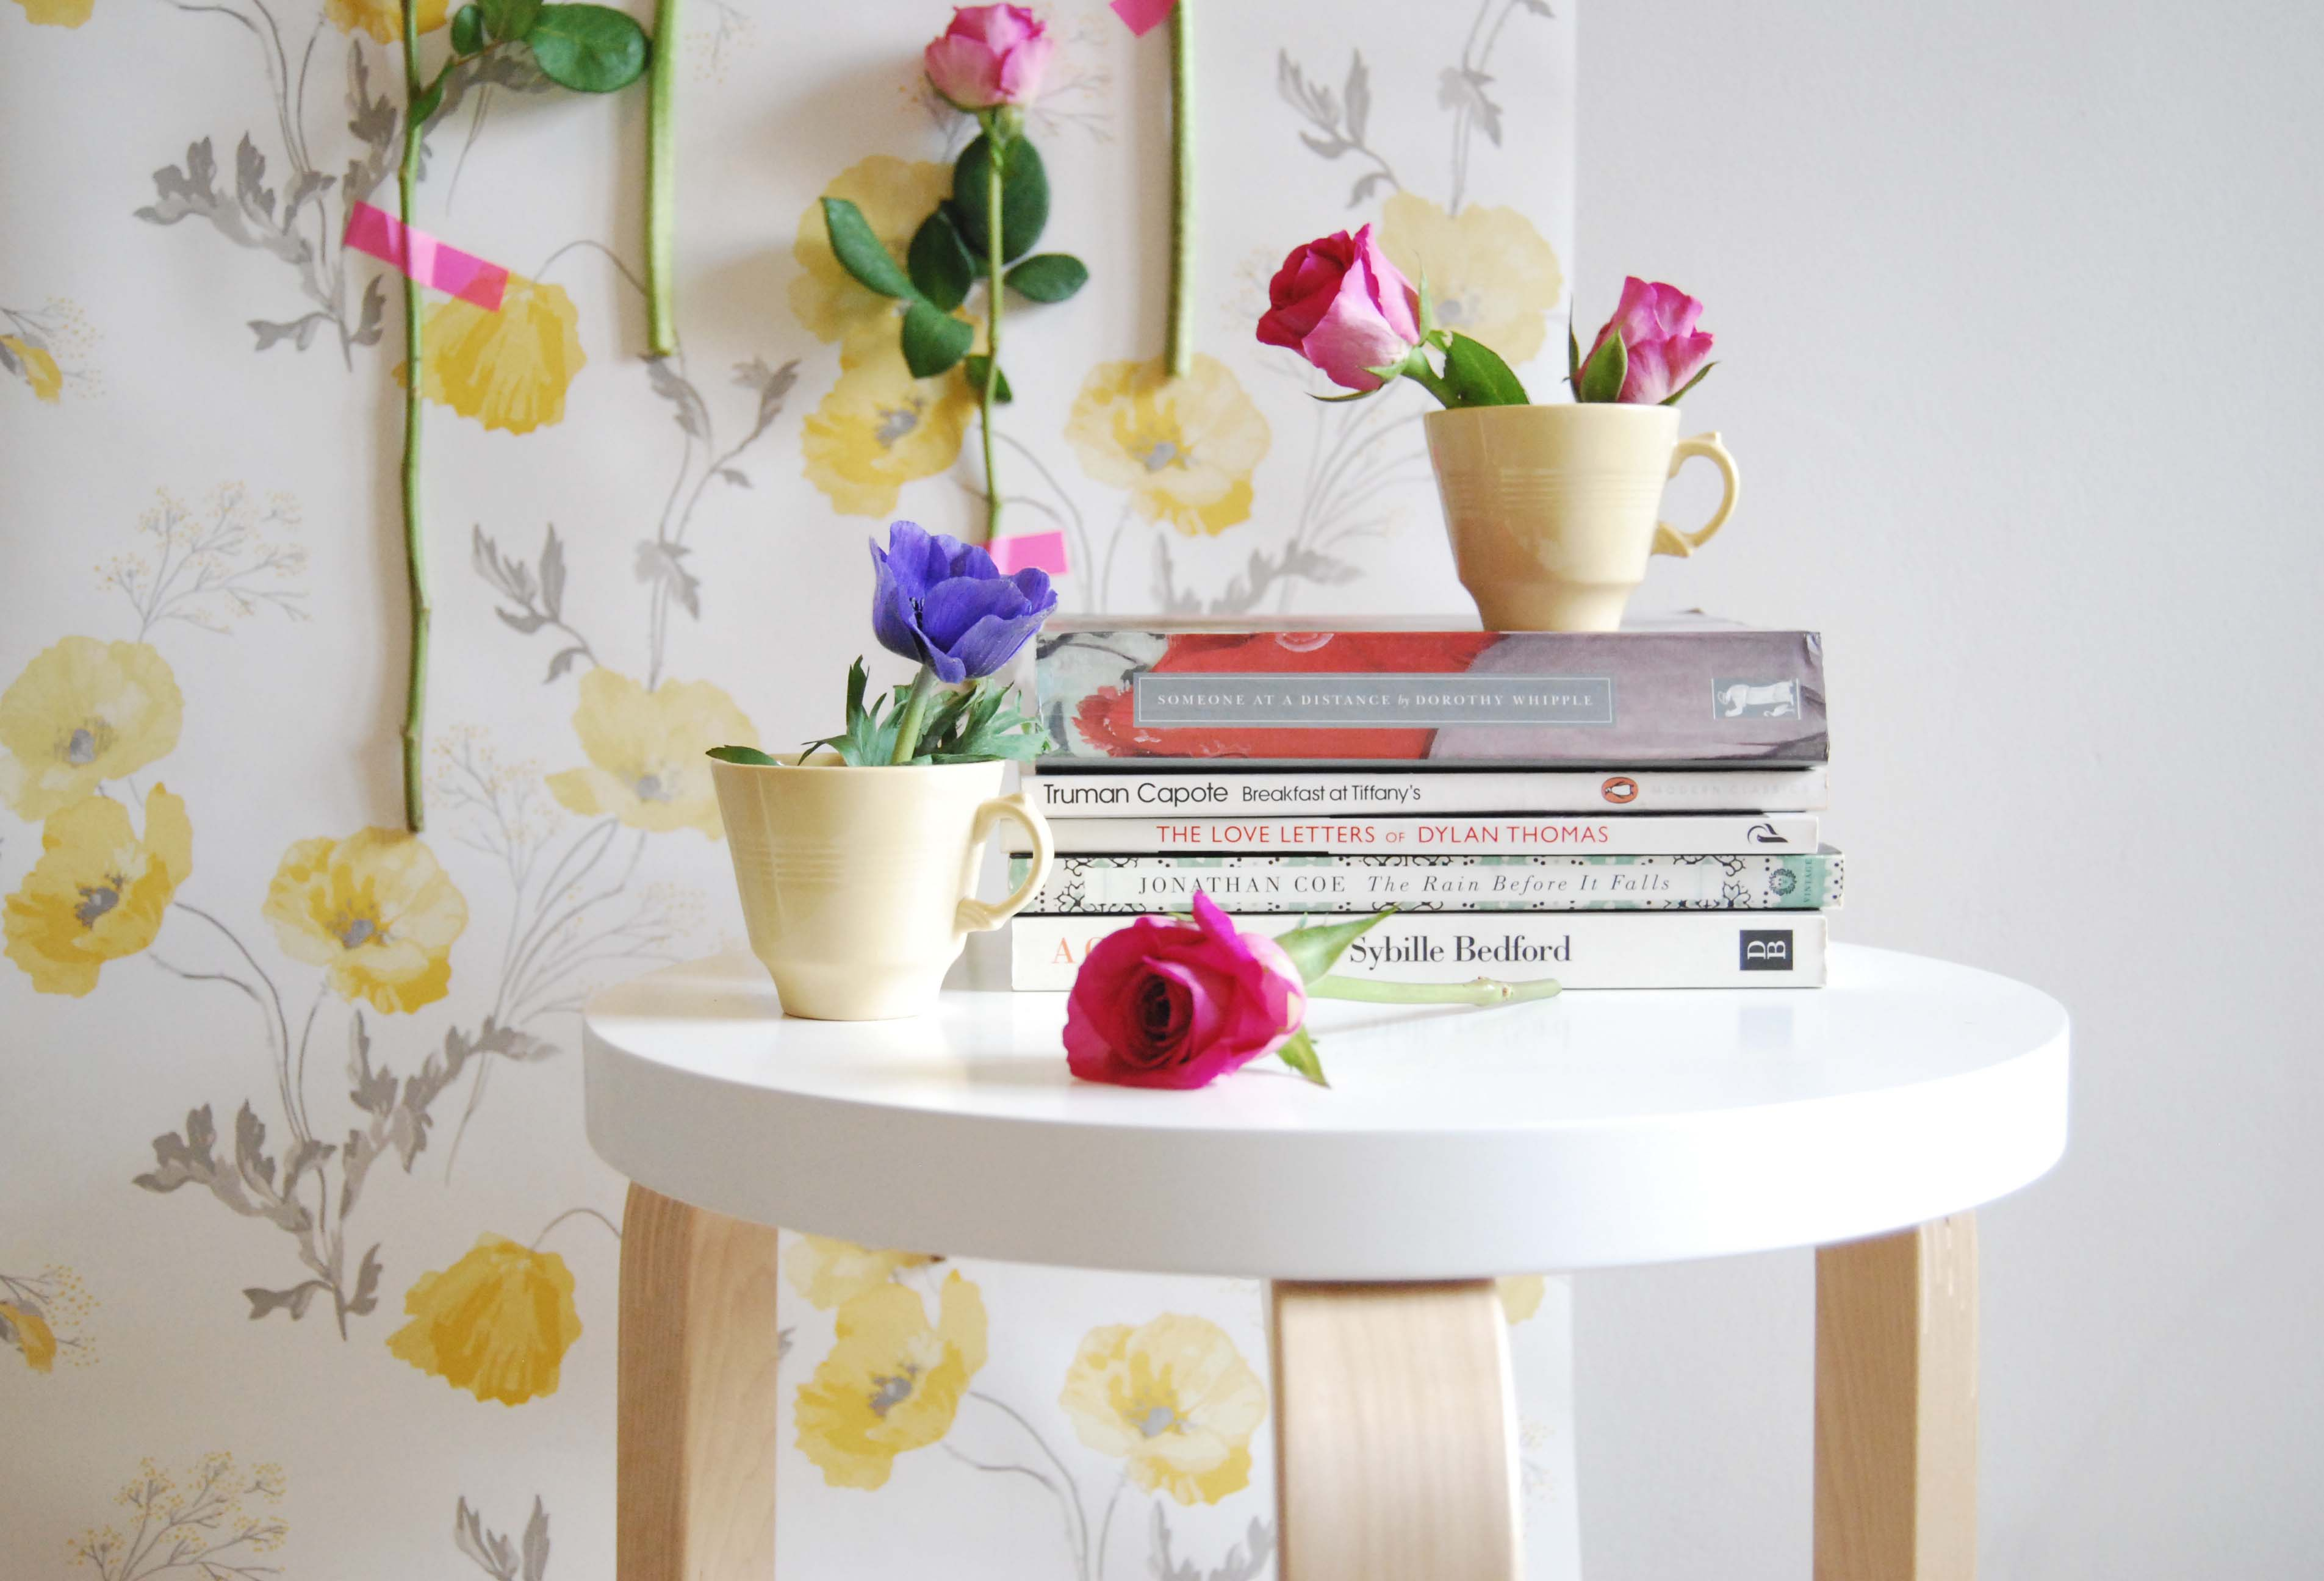 catesthill-styling-the-seasons-february-7